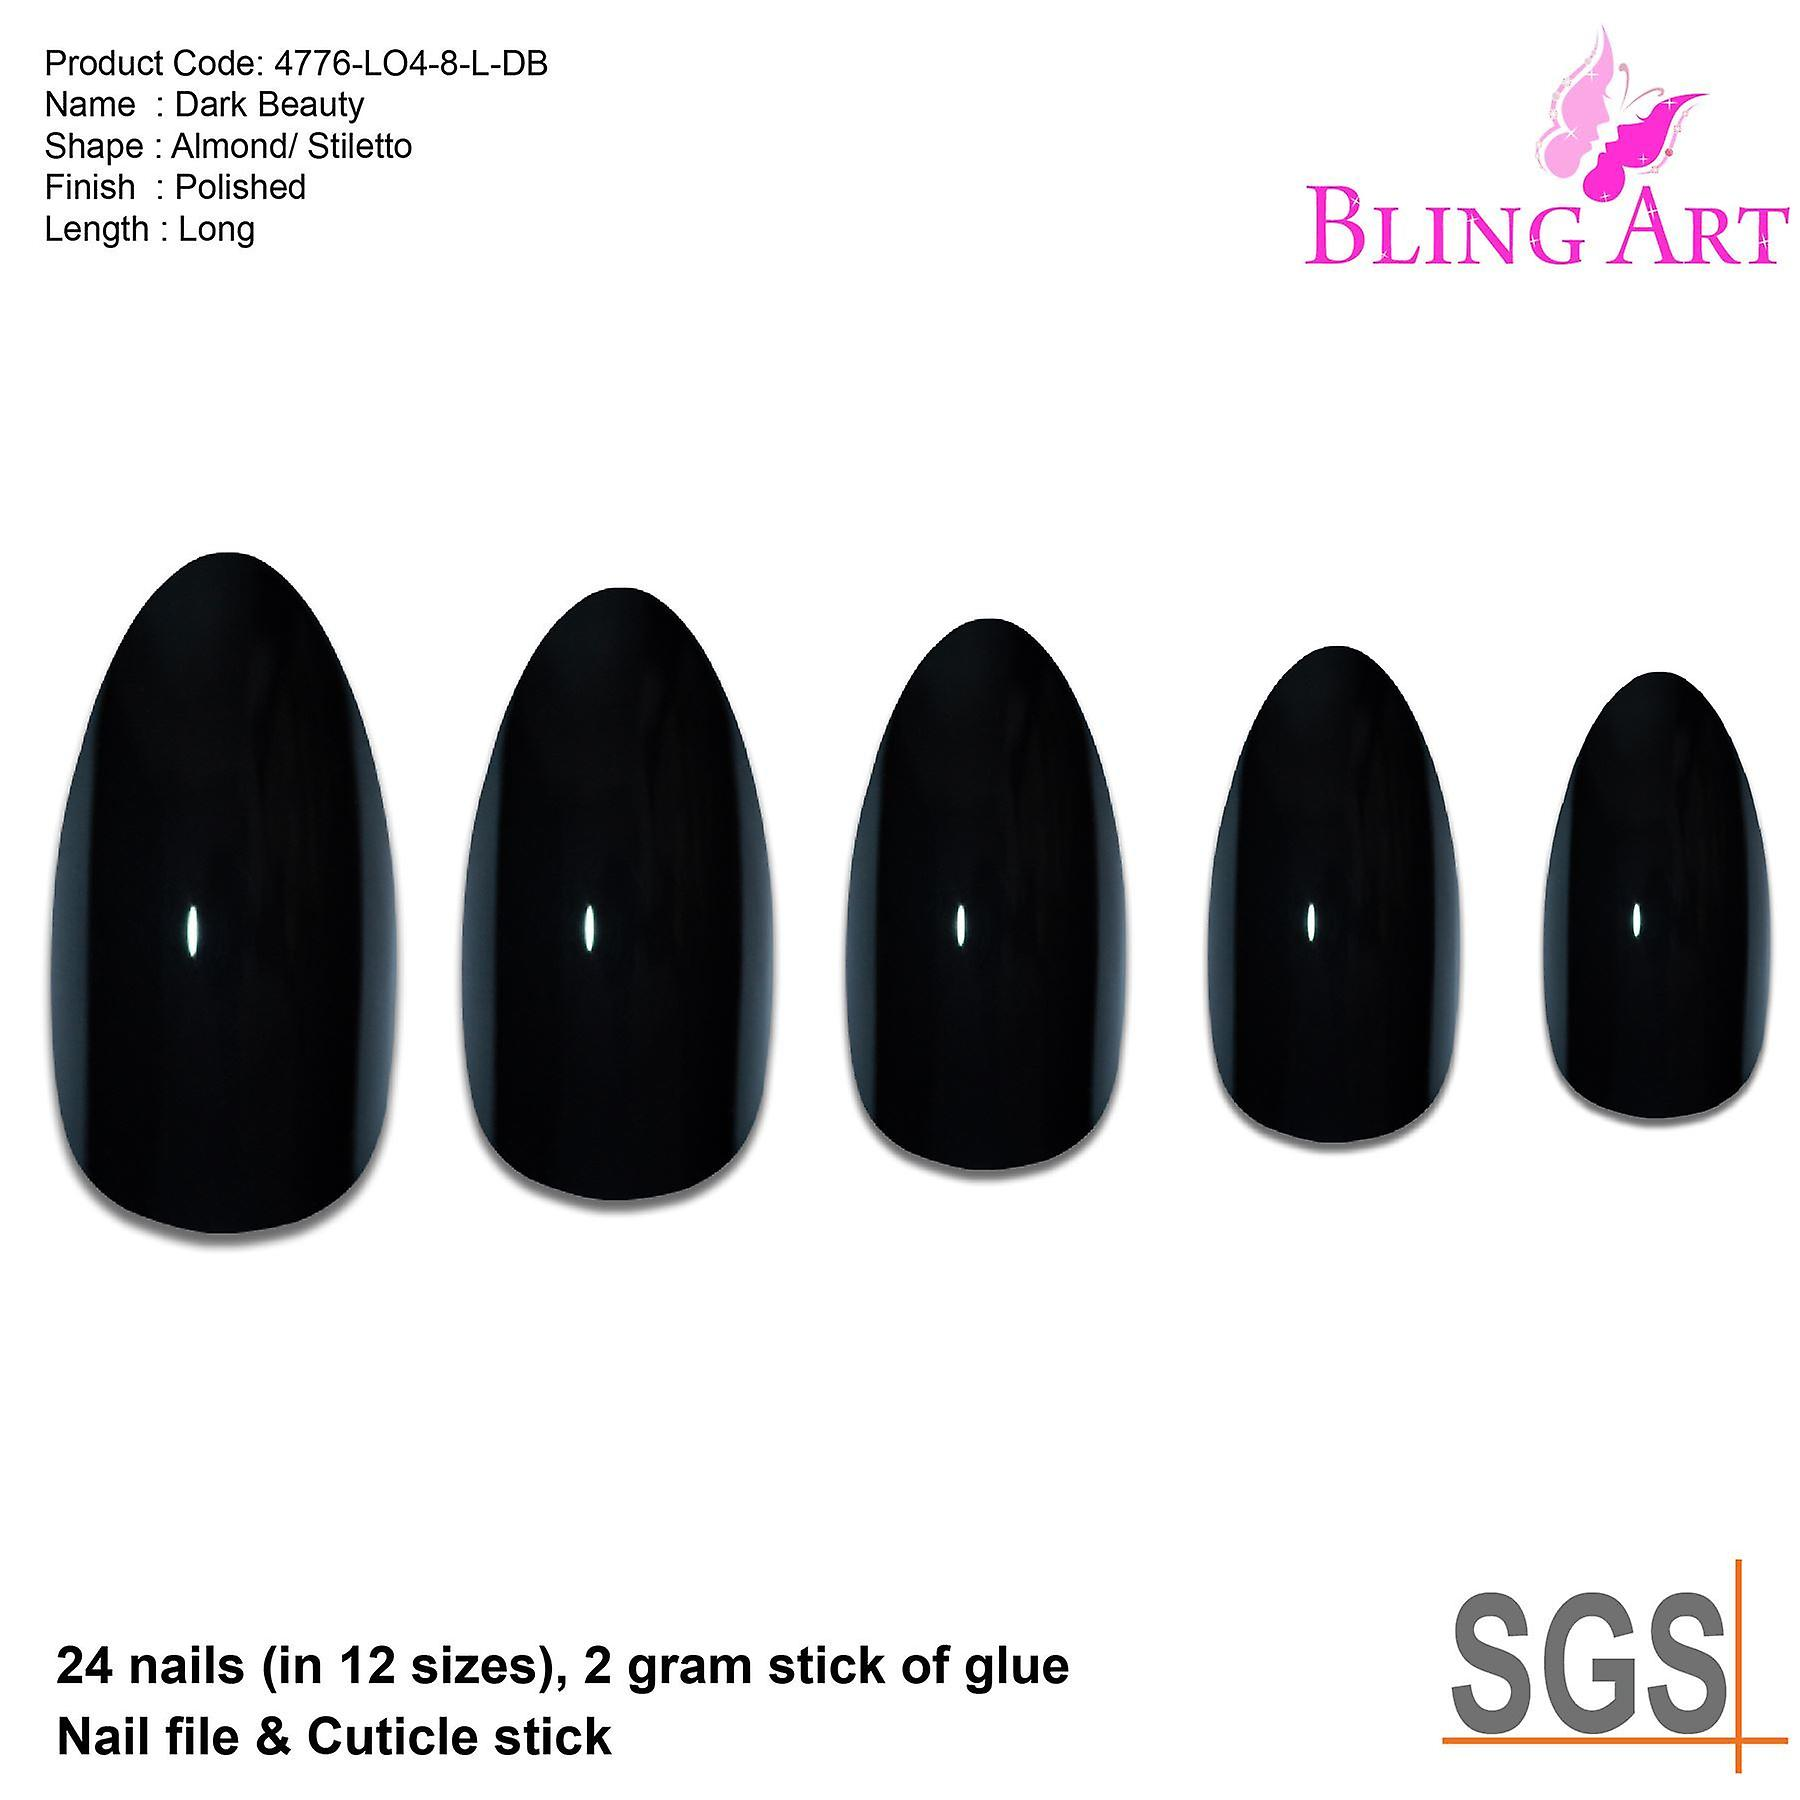 False nails bling art black polished almond stiletto long fake acrylic tips glue